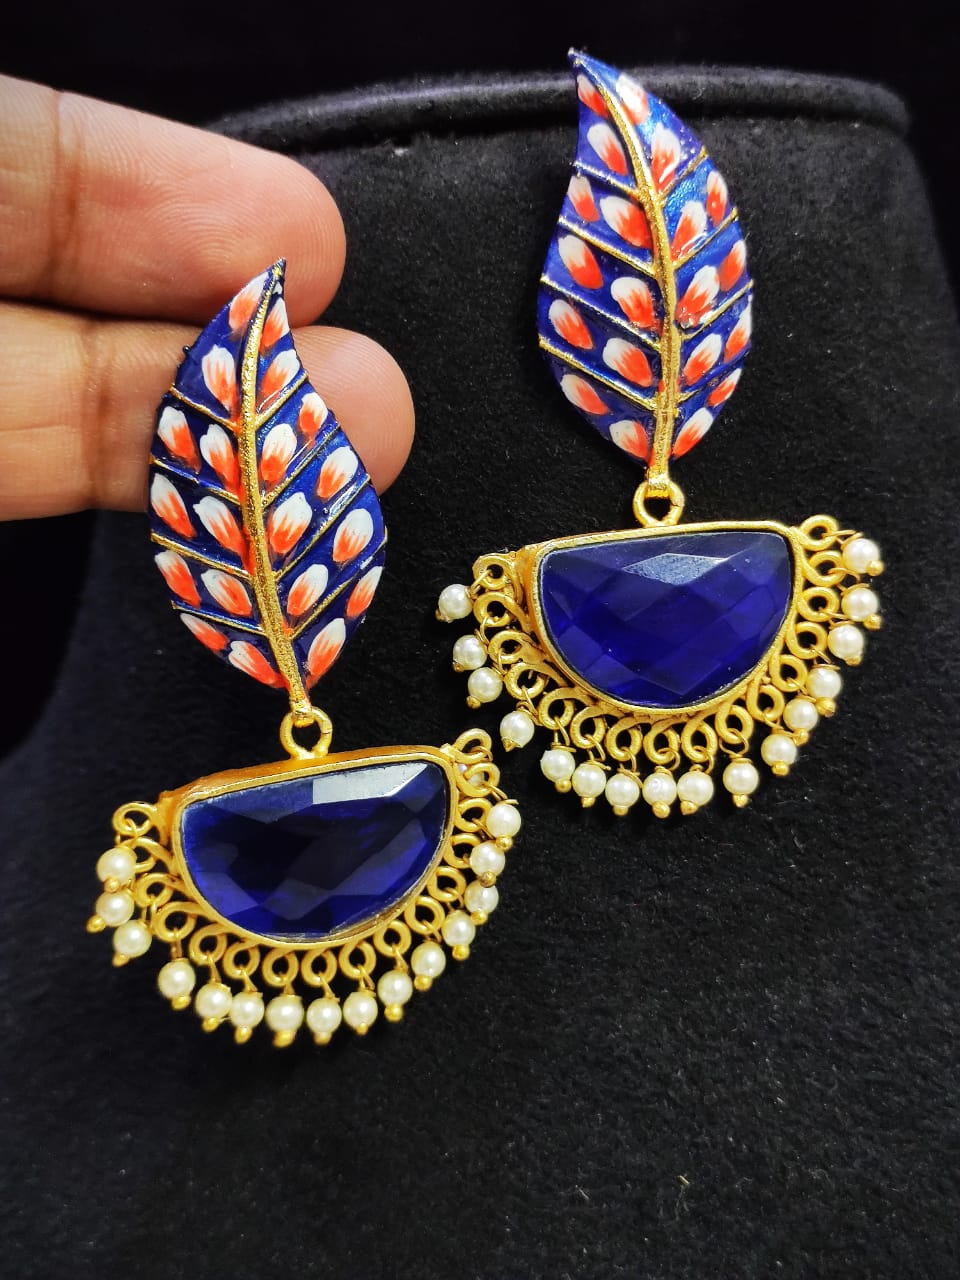 Exclusive Matt Golden Hand Painted Stone Leaf Earrings